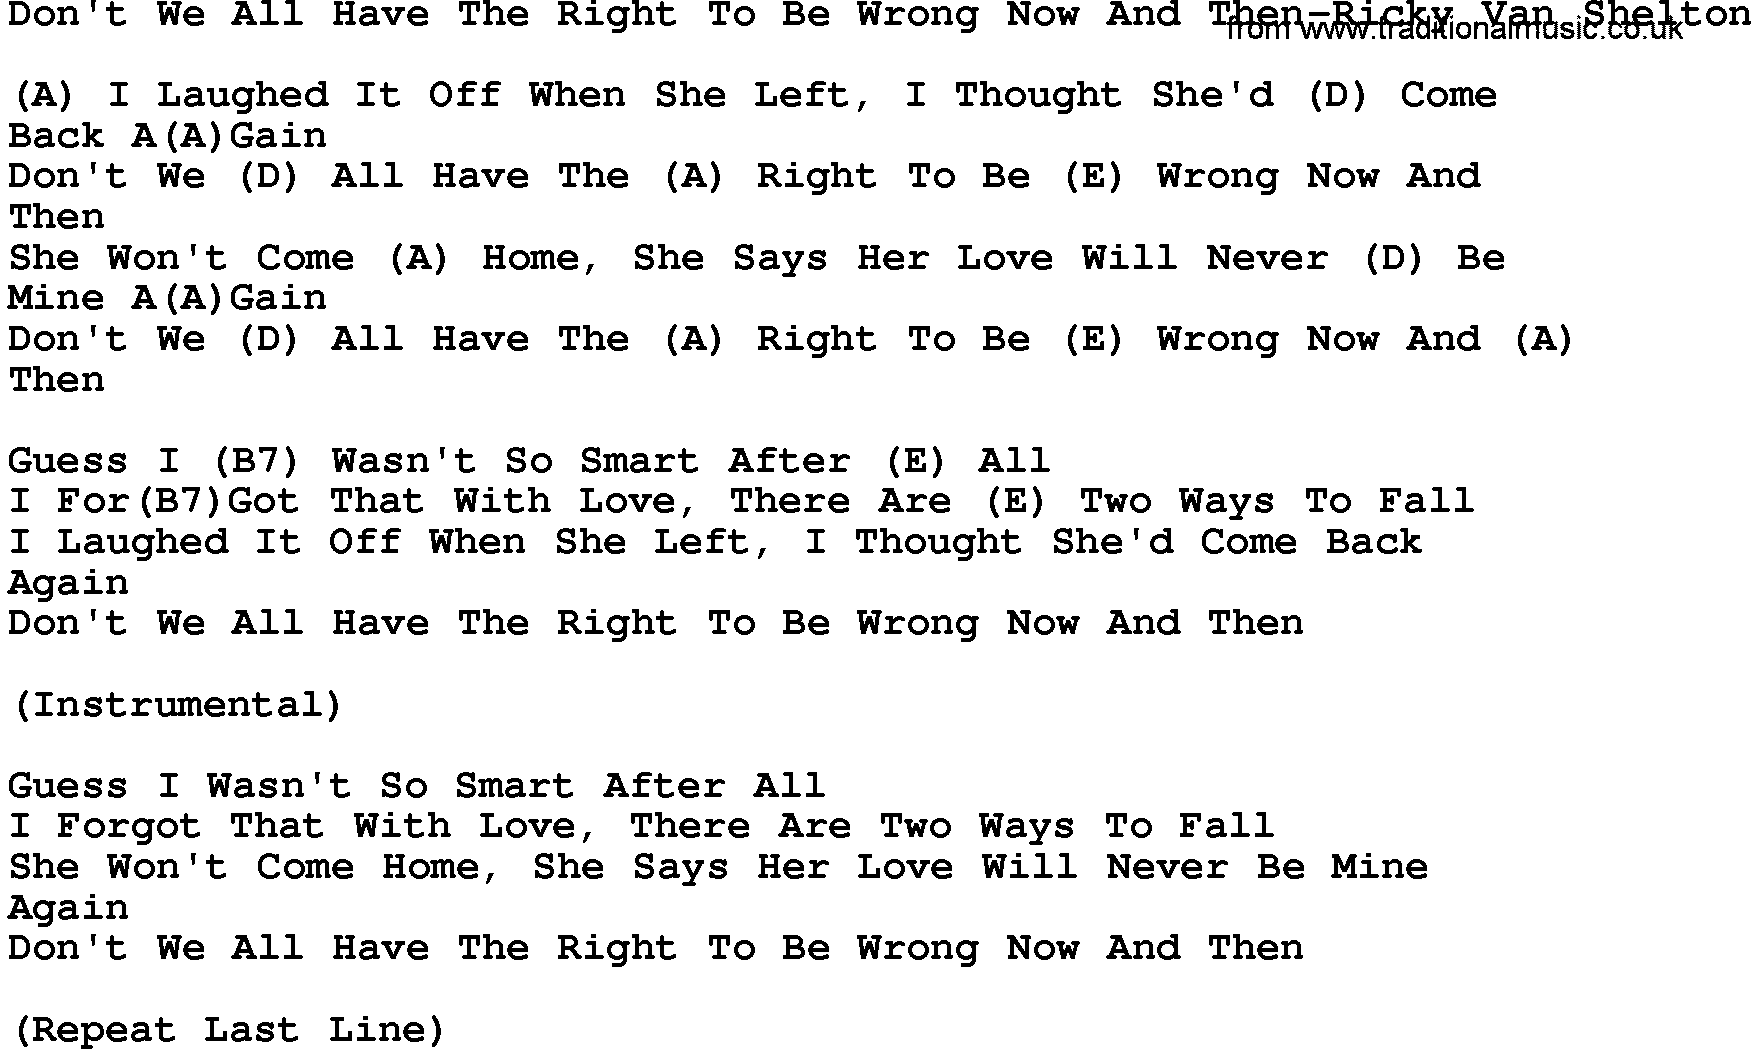 Country musicdont we all have the right to be wrong now and then country musicdont we all have the right to be wrong now and then ricky v lyrics and chords hexwebz Images